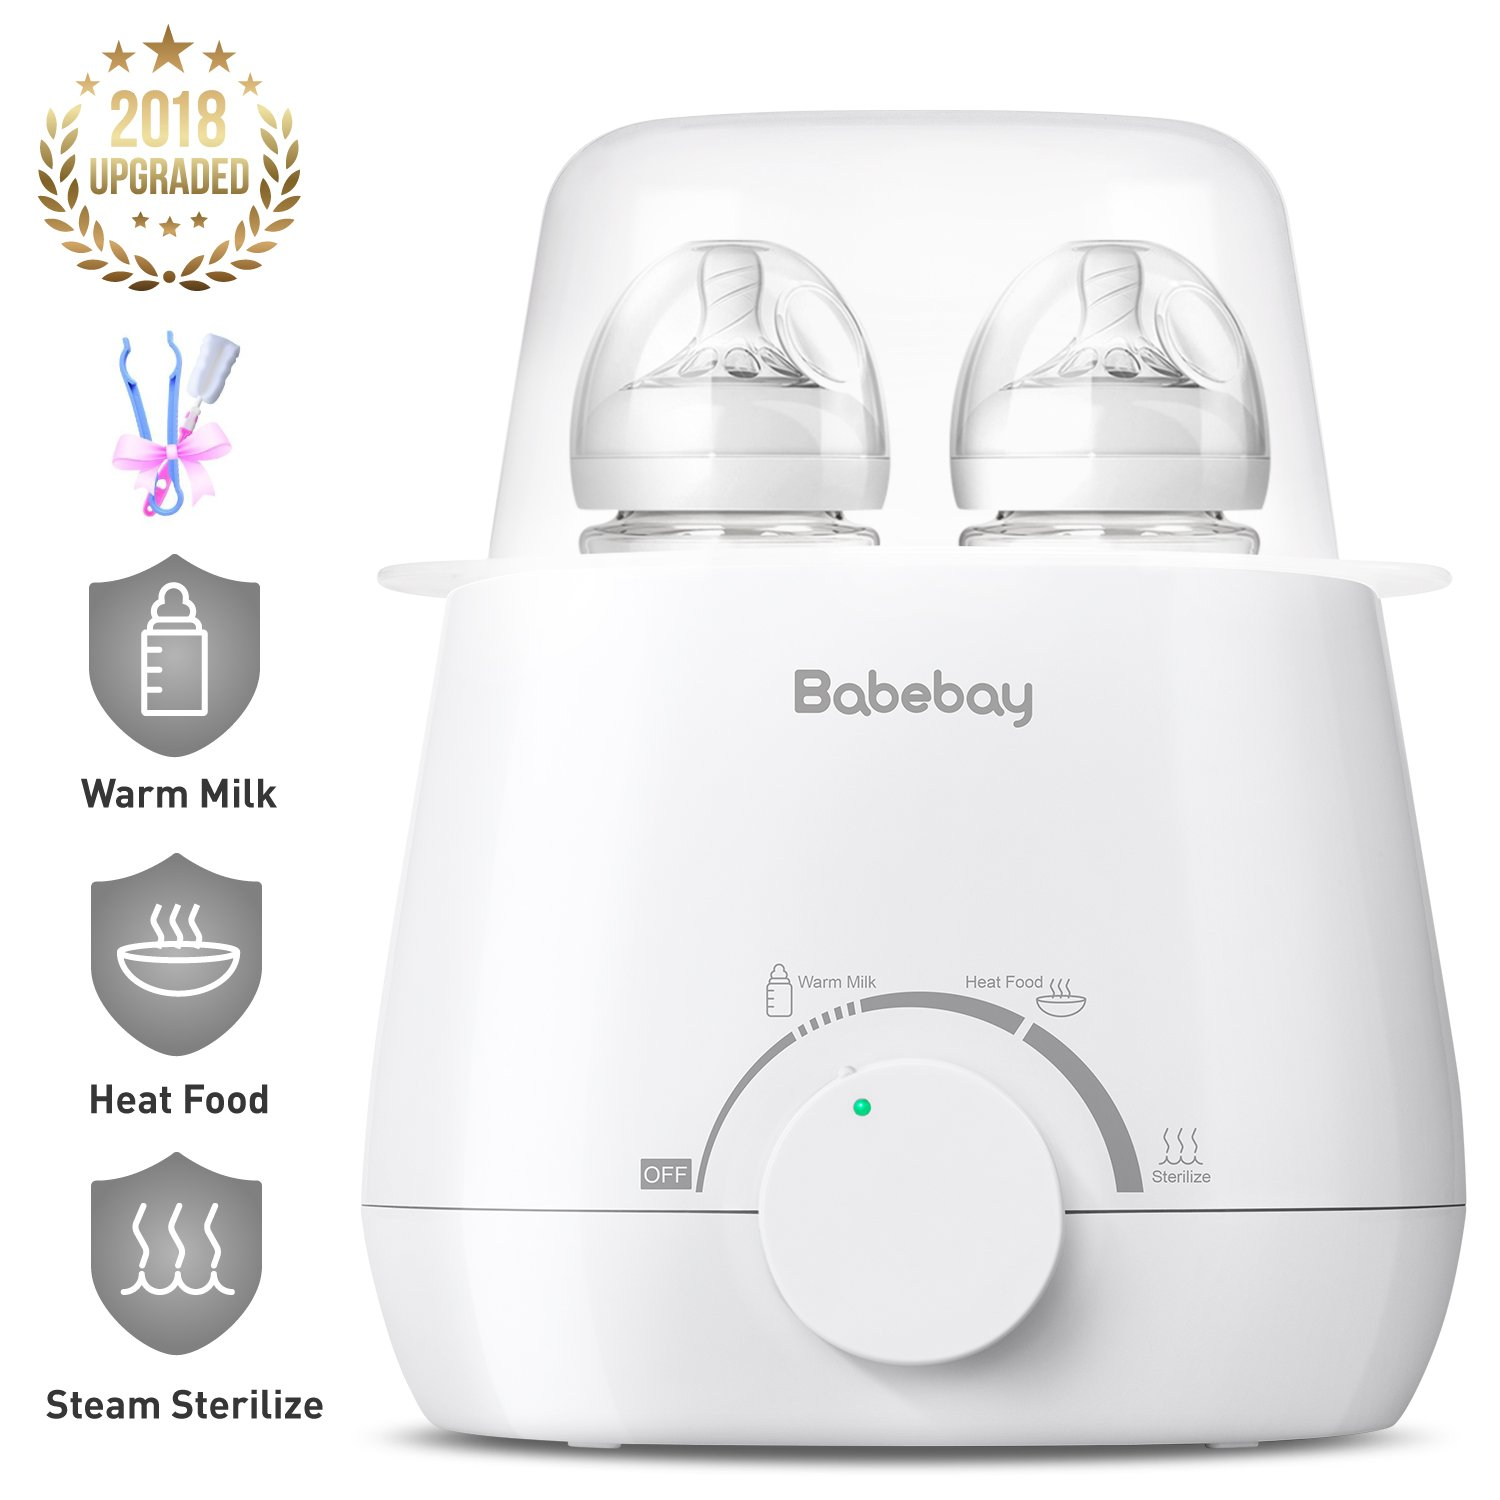 Baby Bottle Warmer, Steam Sterilizer & Baby Food Heater, 3-in-1 with Evenly Warming Breast Milk or Formula, Accurate Temperature Control, Bottle Brush and Tongs Included